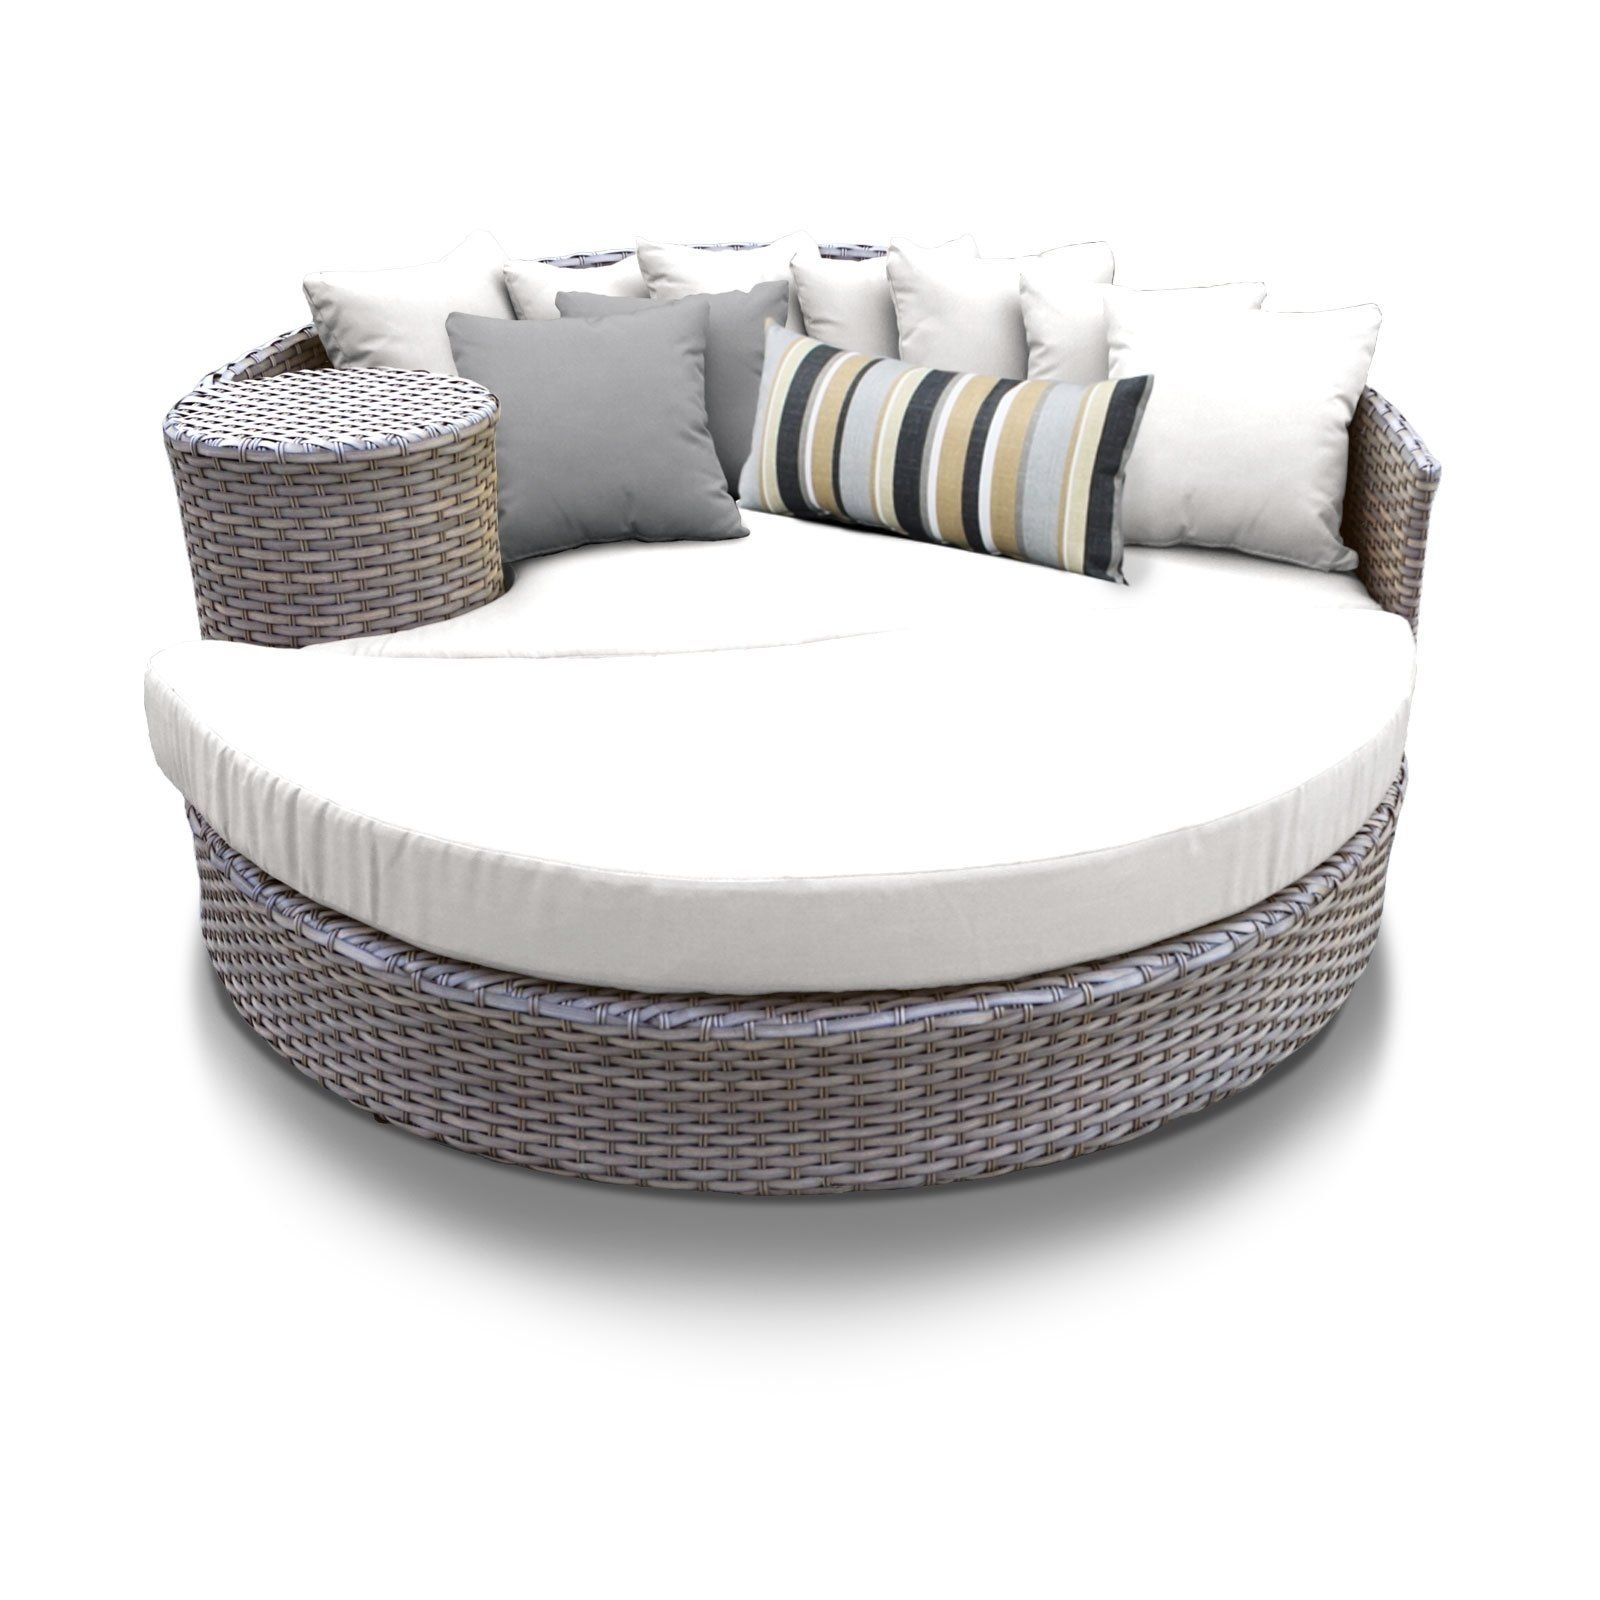 Oasis Circular Sun Bed Outdoor Wicker Patio Furniture Silver